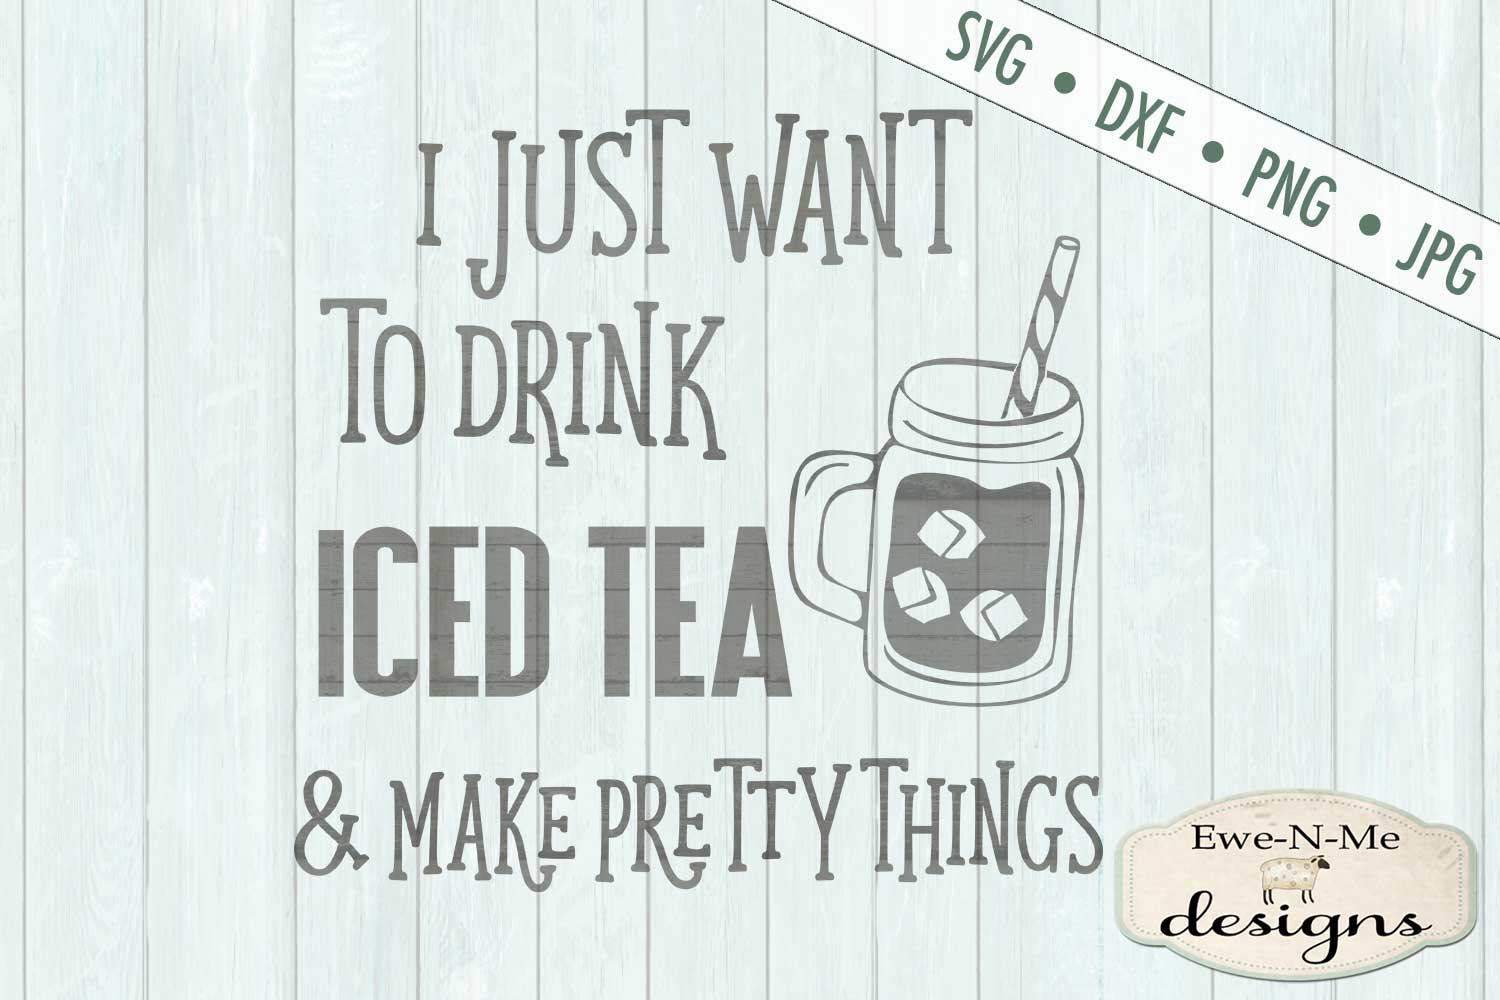 Drink Iced Tea & Make Pretty Things SVG DXF Cut Files example image 2